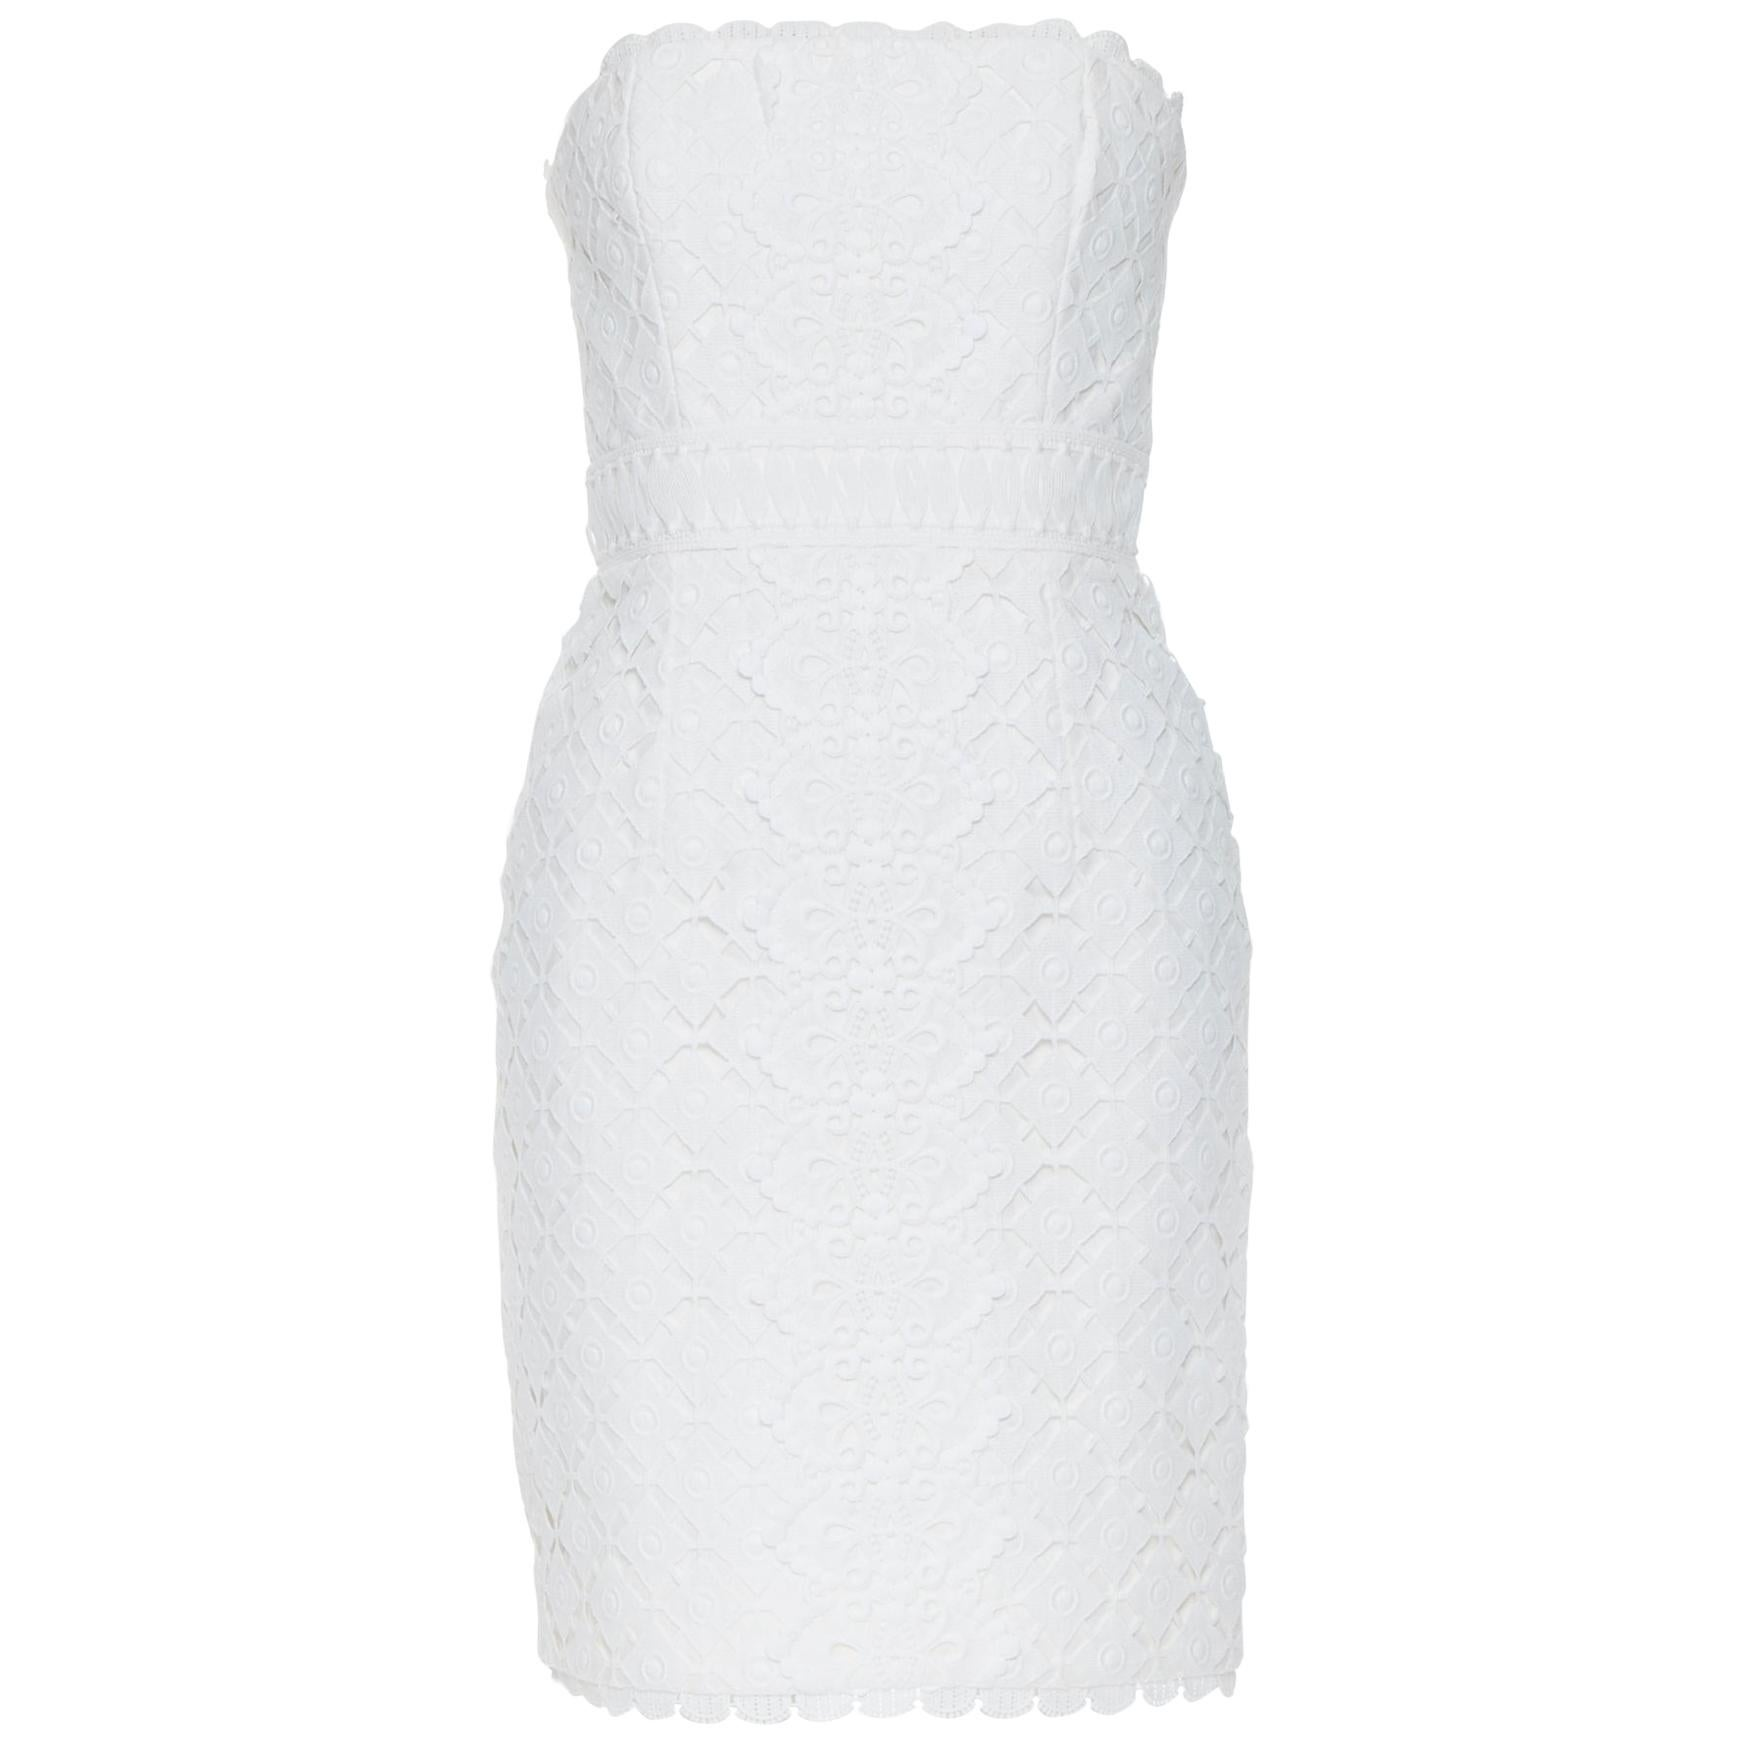 ANDREW GN 2009 white floral lace lattice strapless cocktail dress IT36 XS